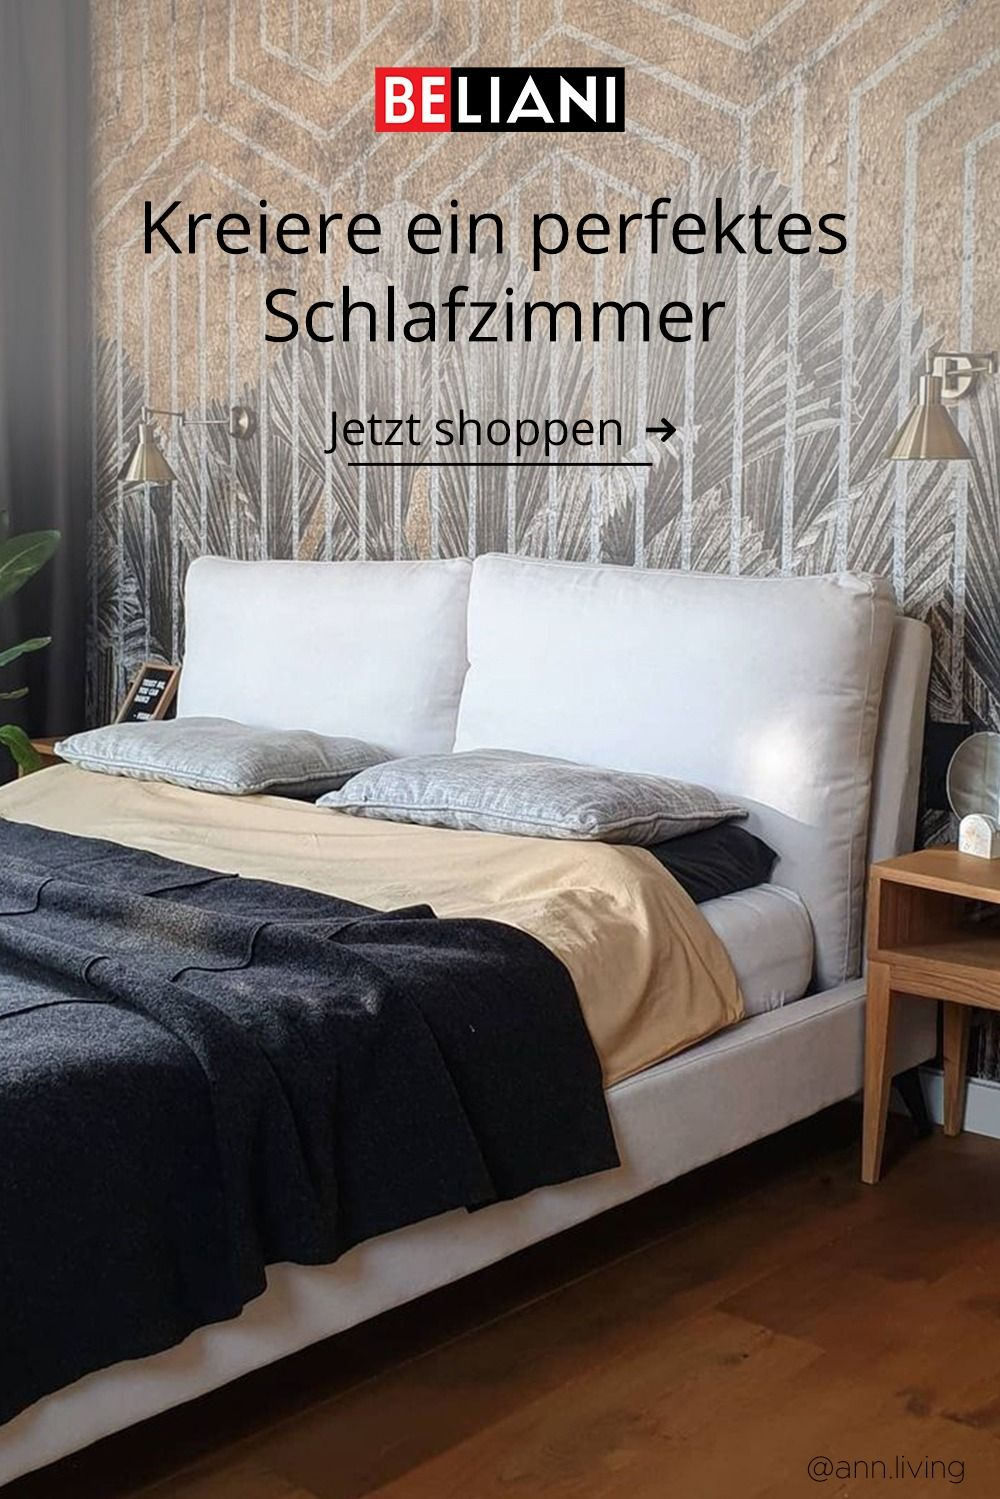 160 Schlafzimmer Ideas In 2021 Beliani Home Decor Home